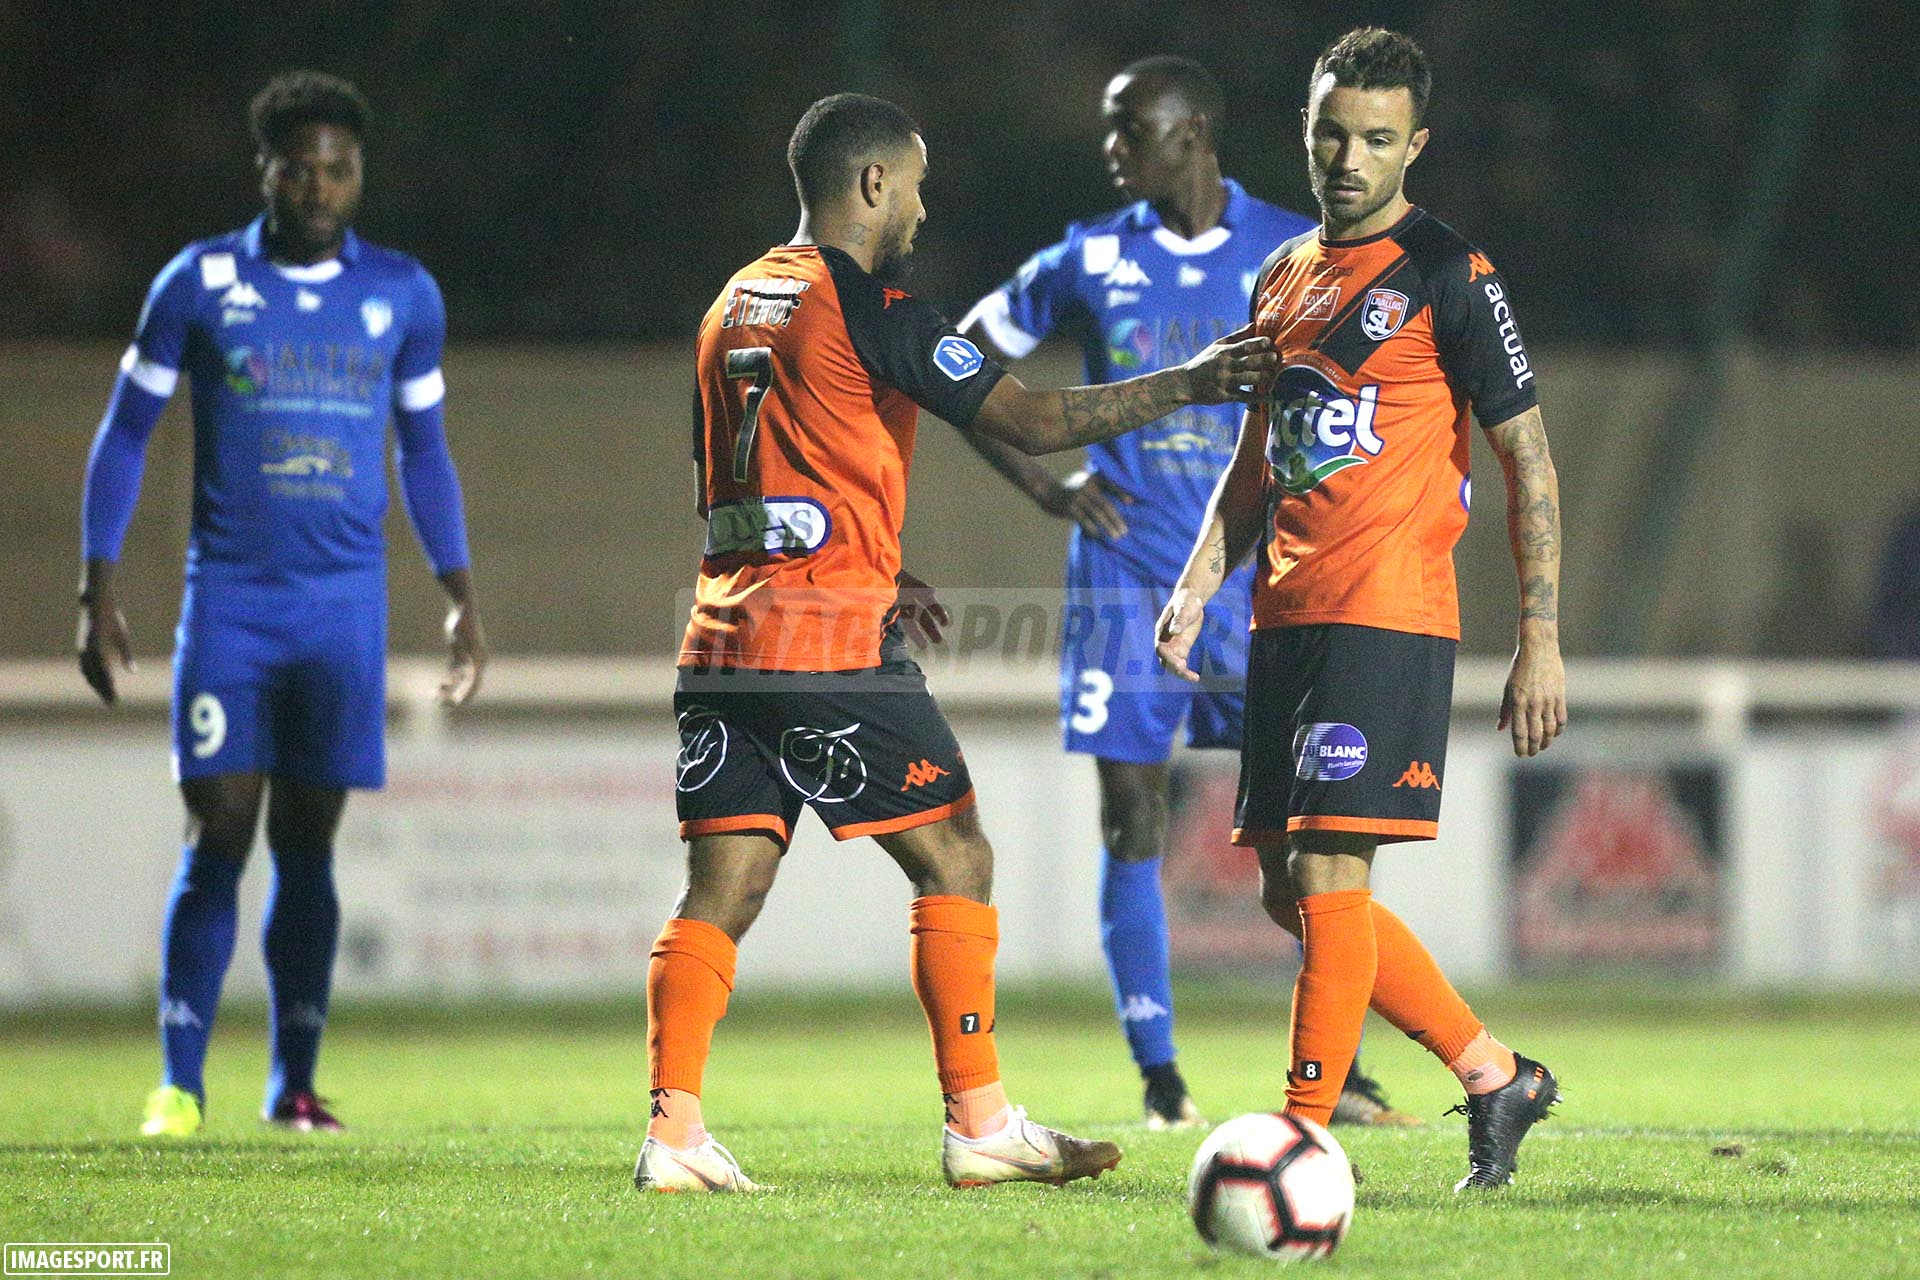 18-19-national-j04-drancy-laval_19